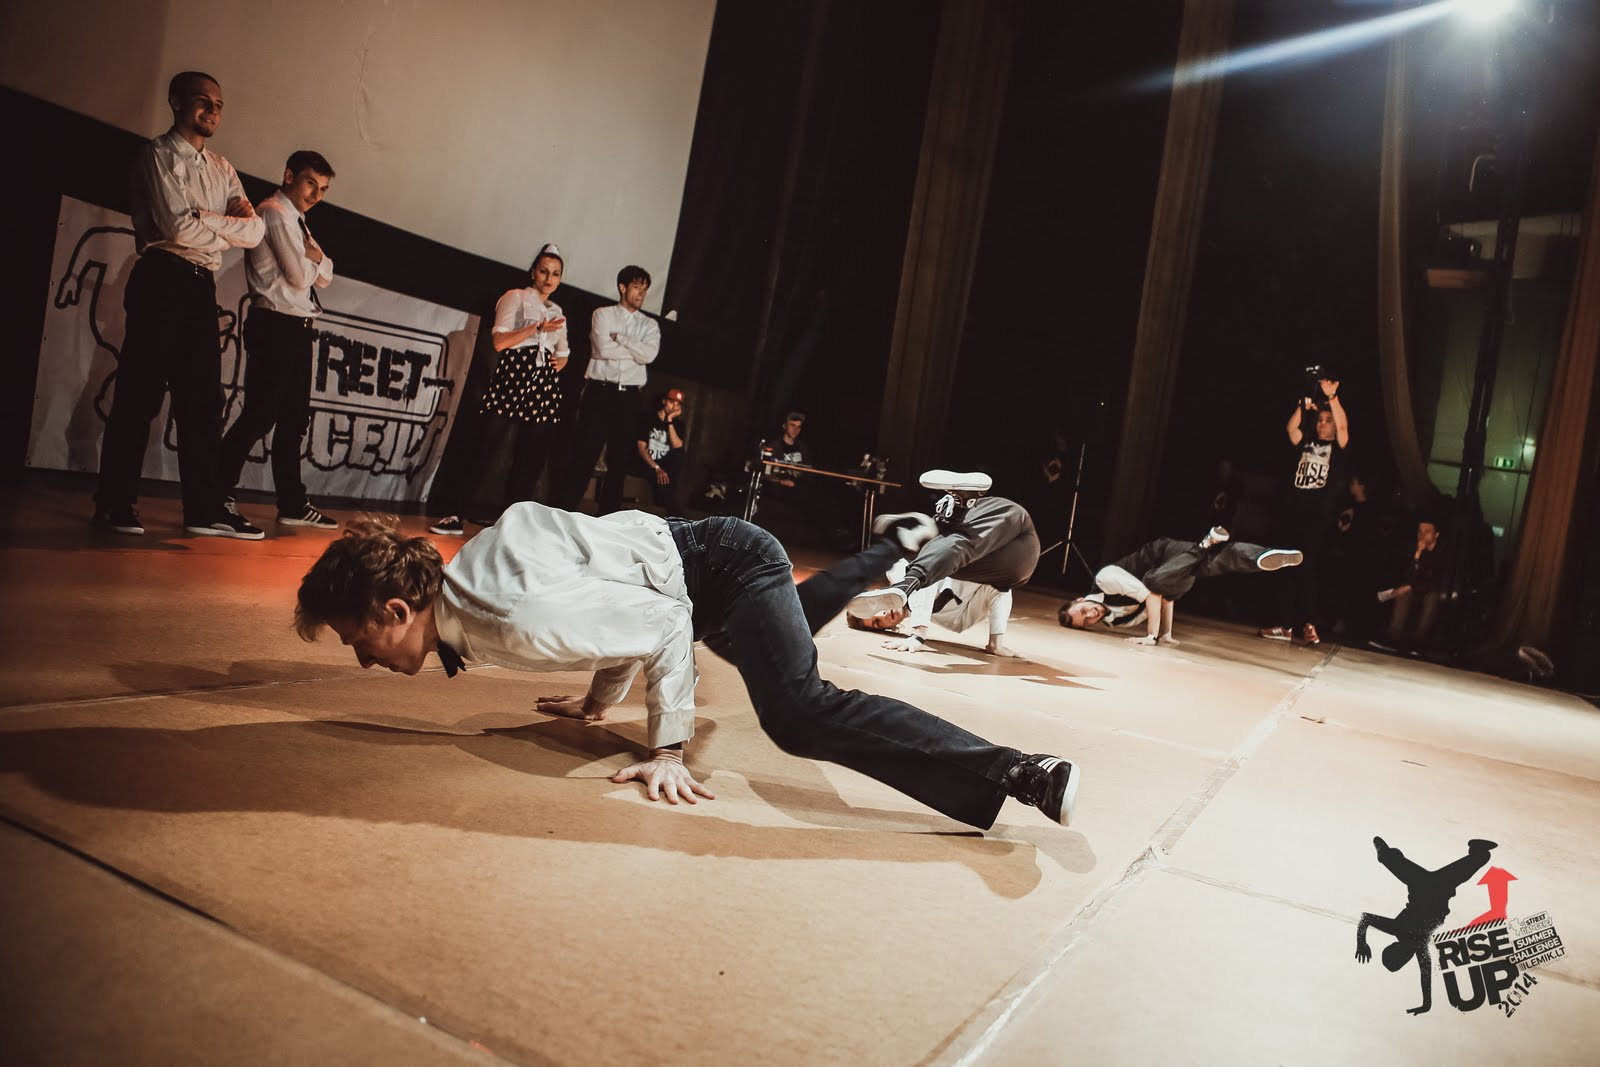 SKILLZ at RISEUP 2014 - _MG_7978.jpg